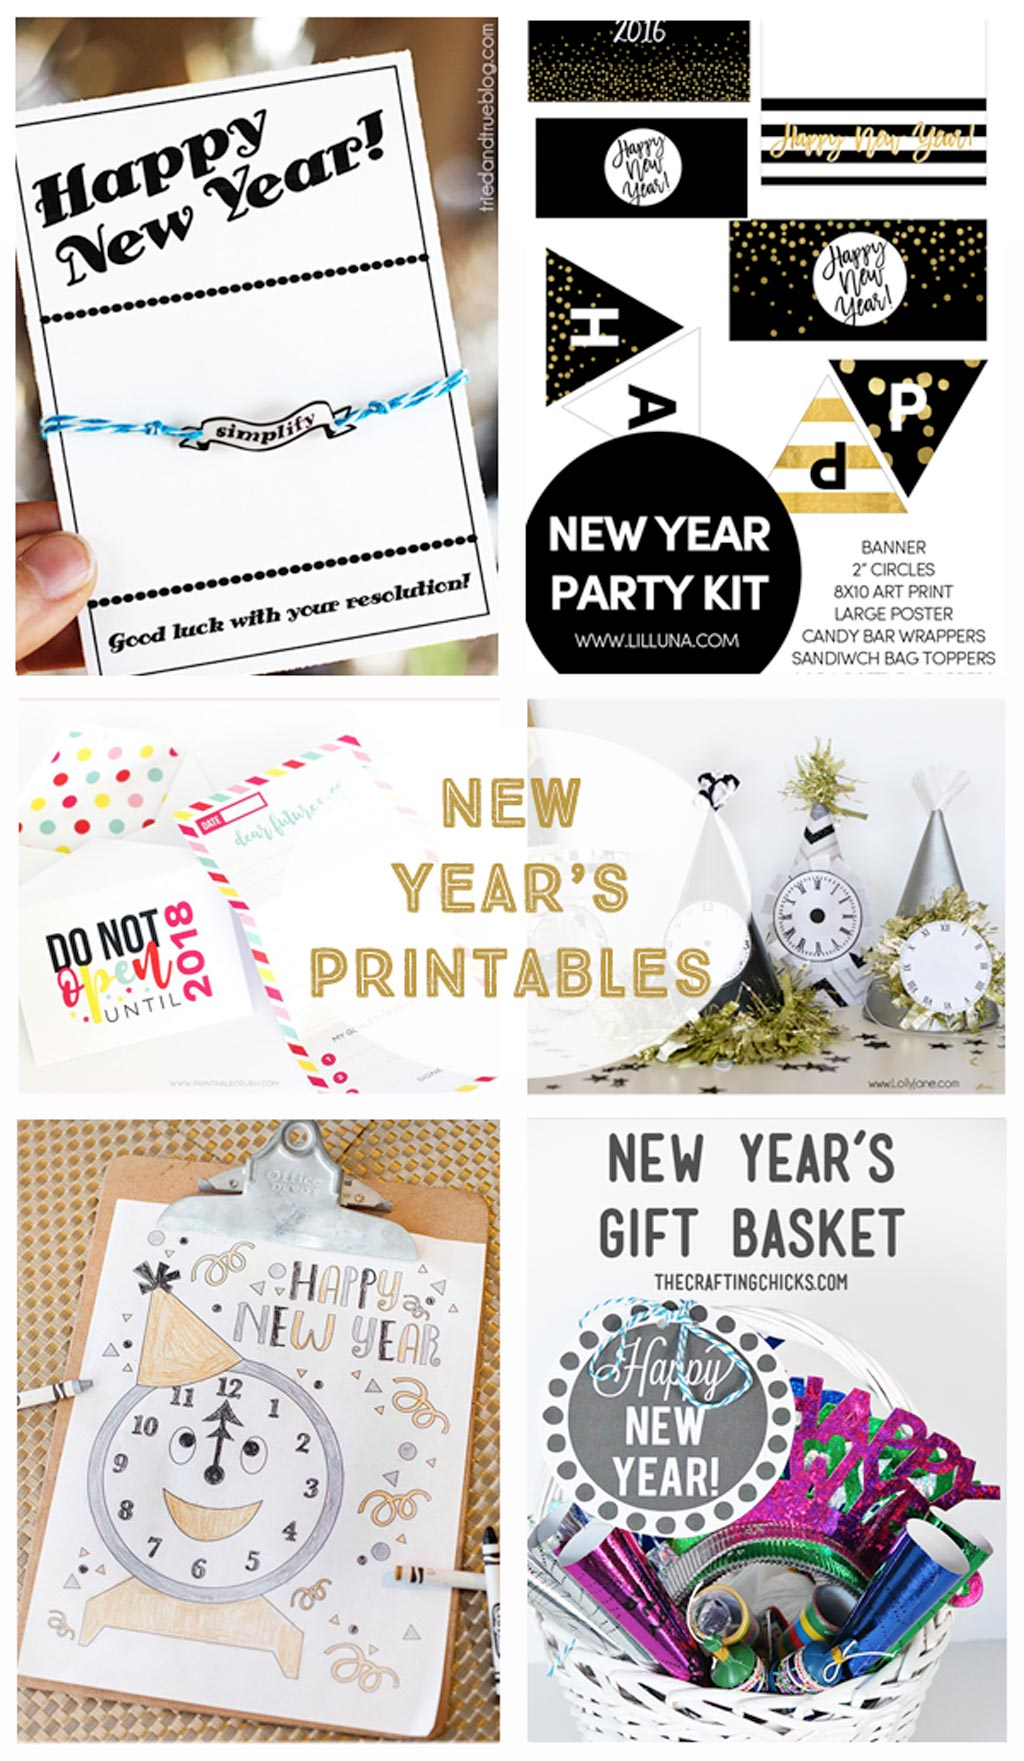 http://thecraftingchicks.com/wp-content/uploads/2016/12/New-Years-Printables.jpg